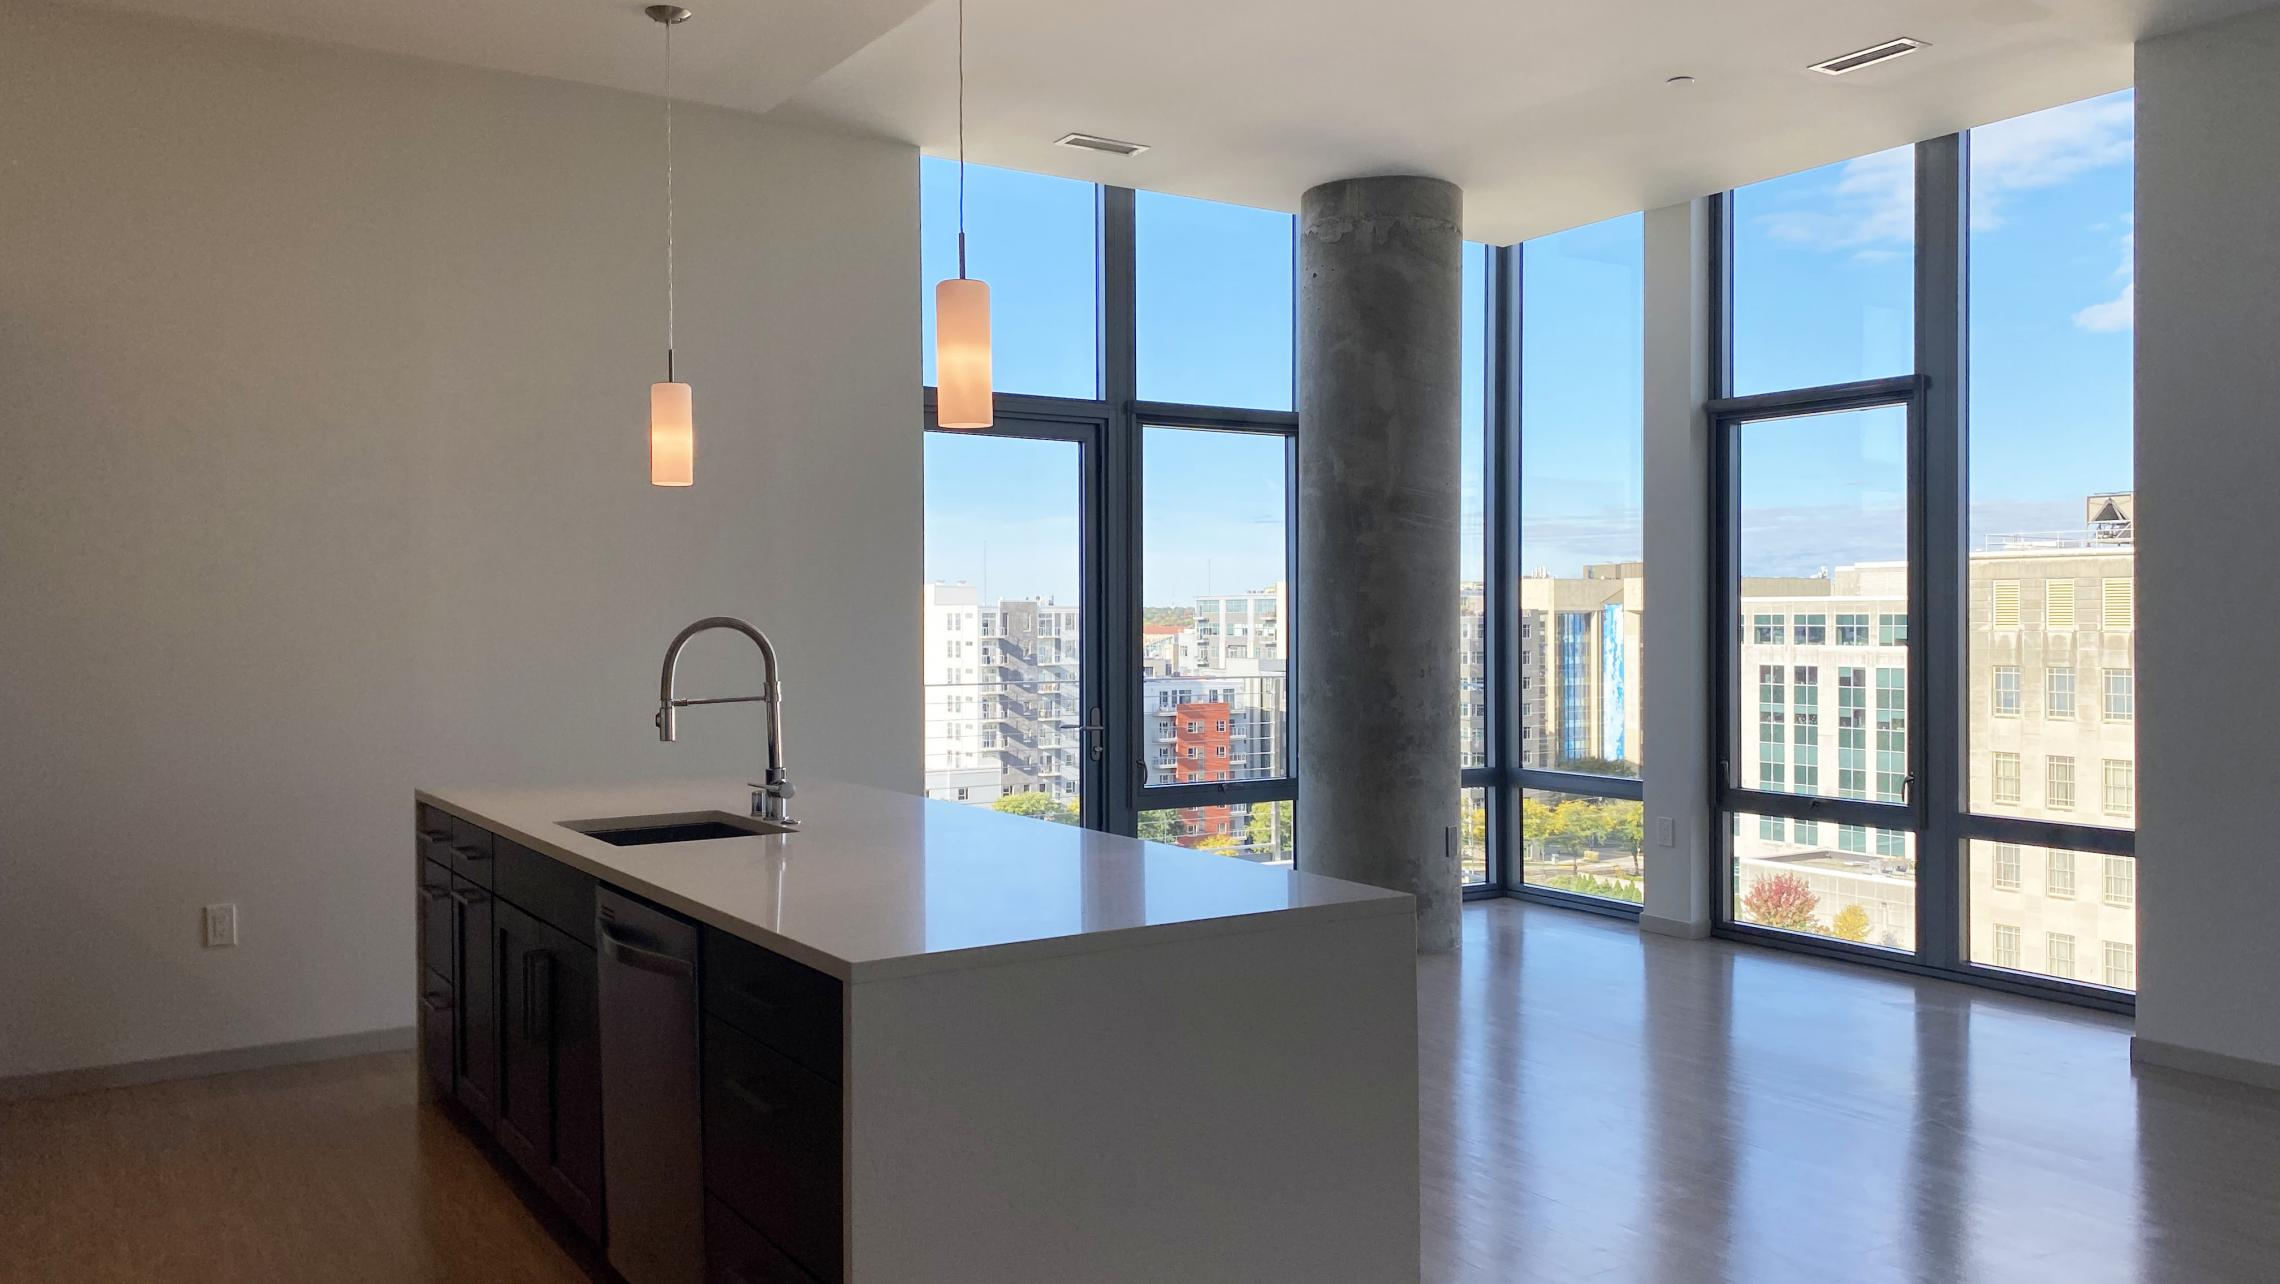 The-Pressman-Apartments-Two-Bedroom-912-Modern-Upscale-Luxury-Top-Floor-Capitol-Lake-View-Balcony-Corner-Lifestyle-Downtown-Madison-Design-Concrete-Kithcen-Living-Dining-Windows-Dogs-Cats-Pets-Fitness-Lounge